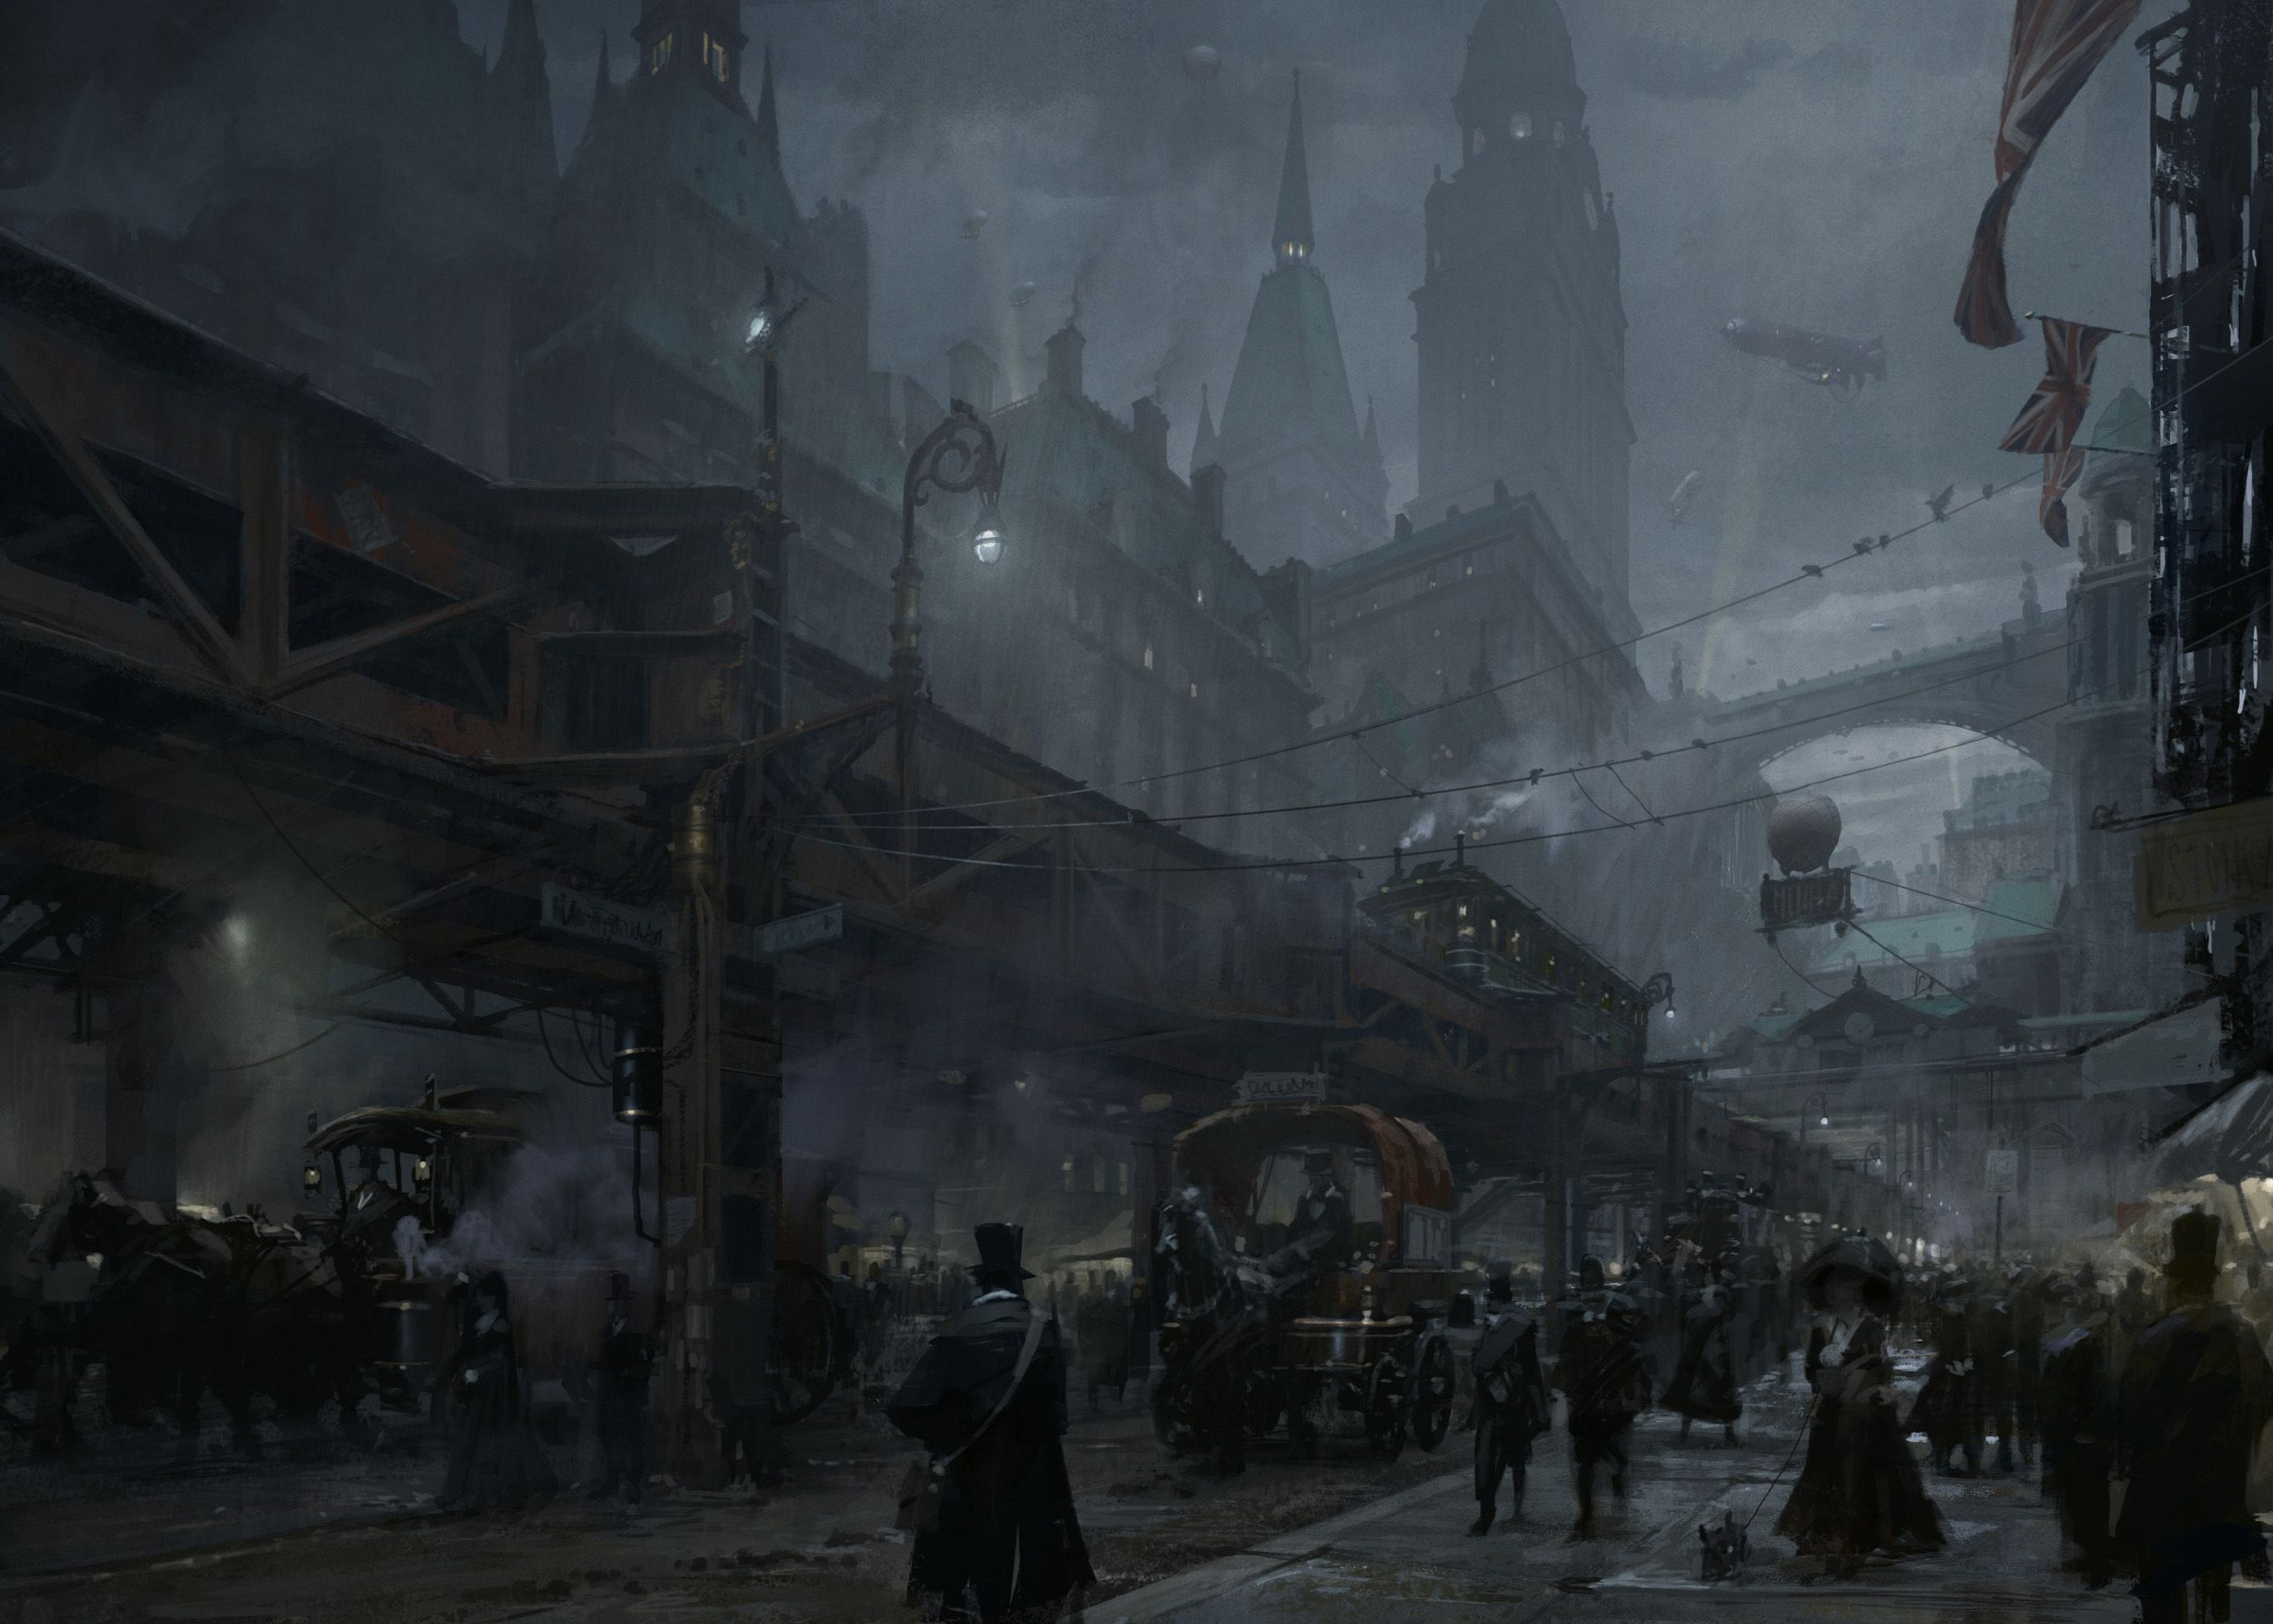 Pin by Brent Smith on Steampunk pollution | Steampunk city ...  |Victorian Steampunk Concept Art